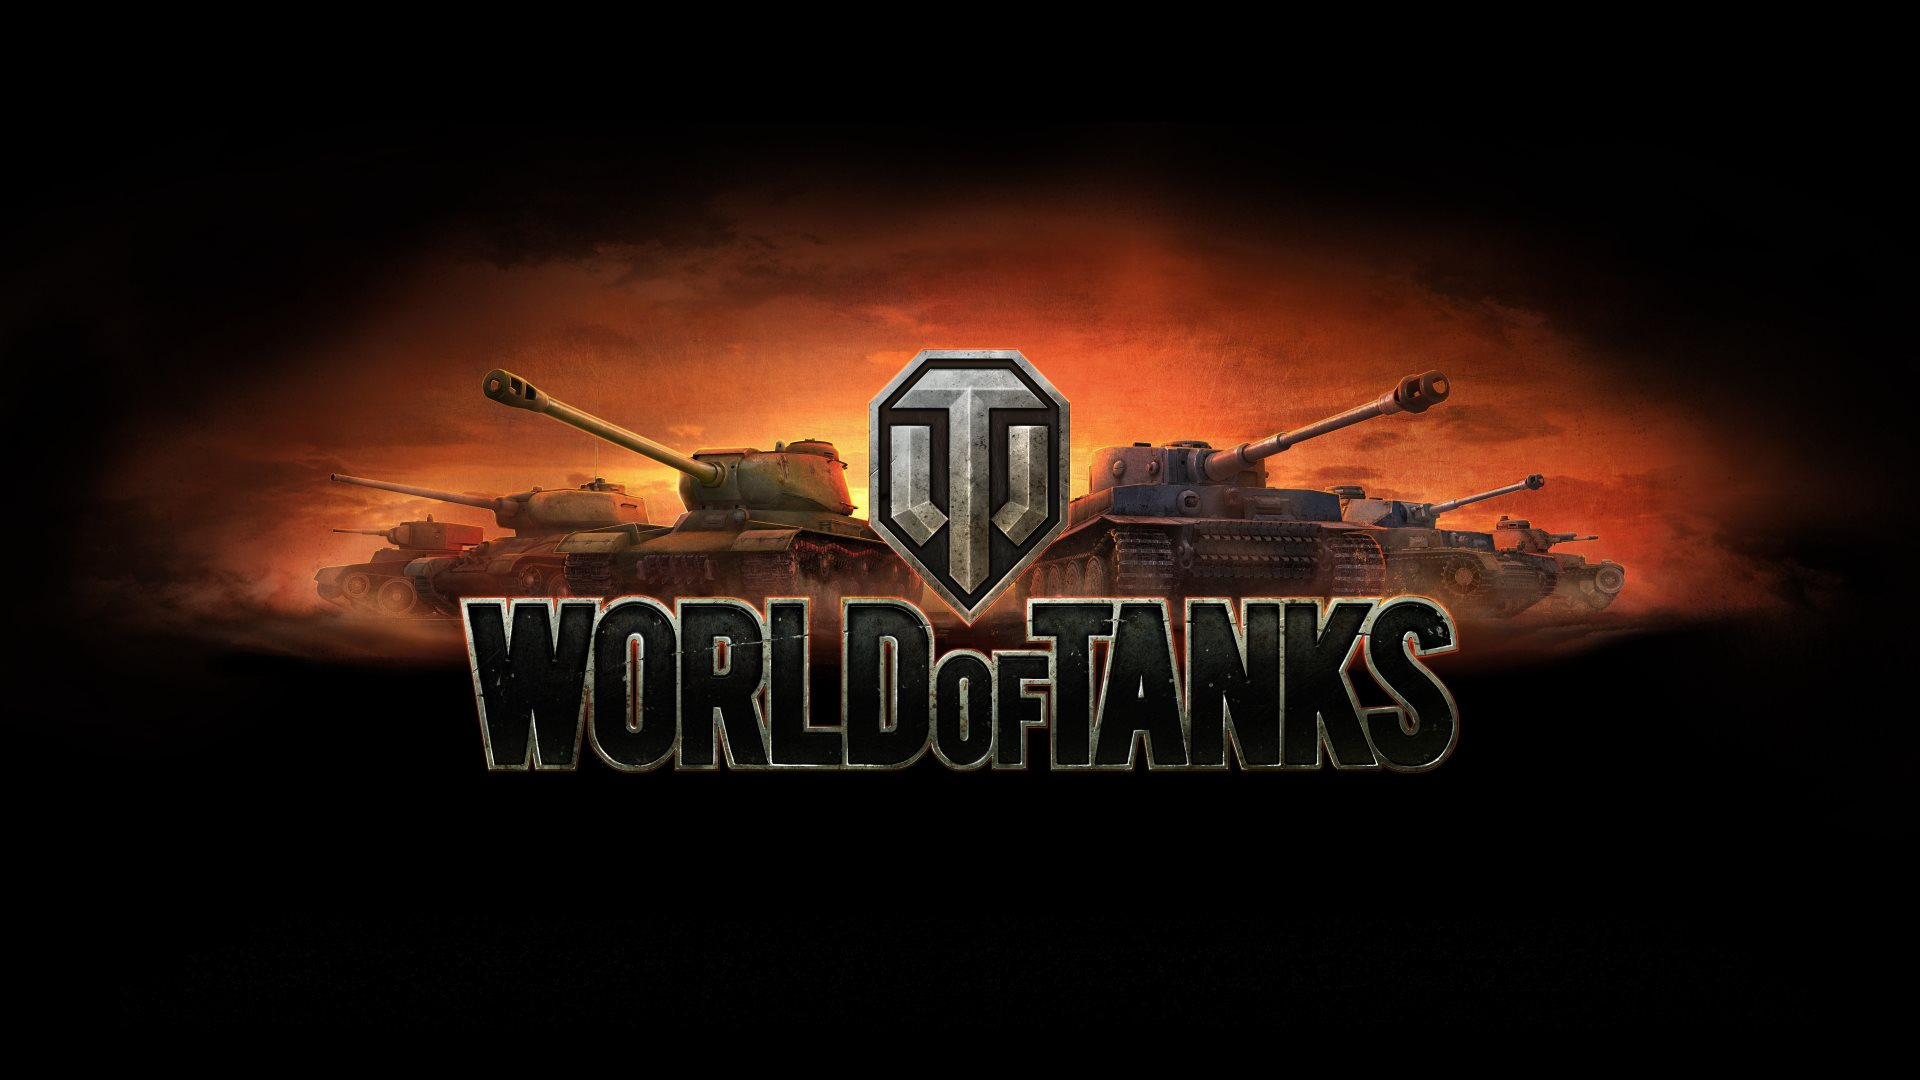 world of tanks hd wallpapers 4k